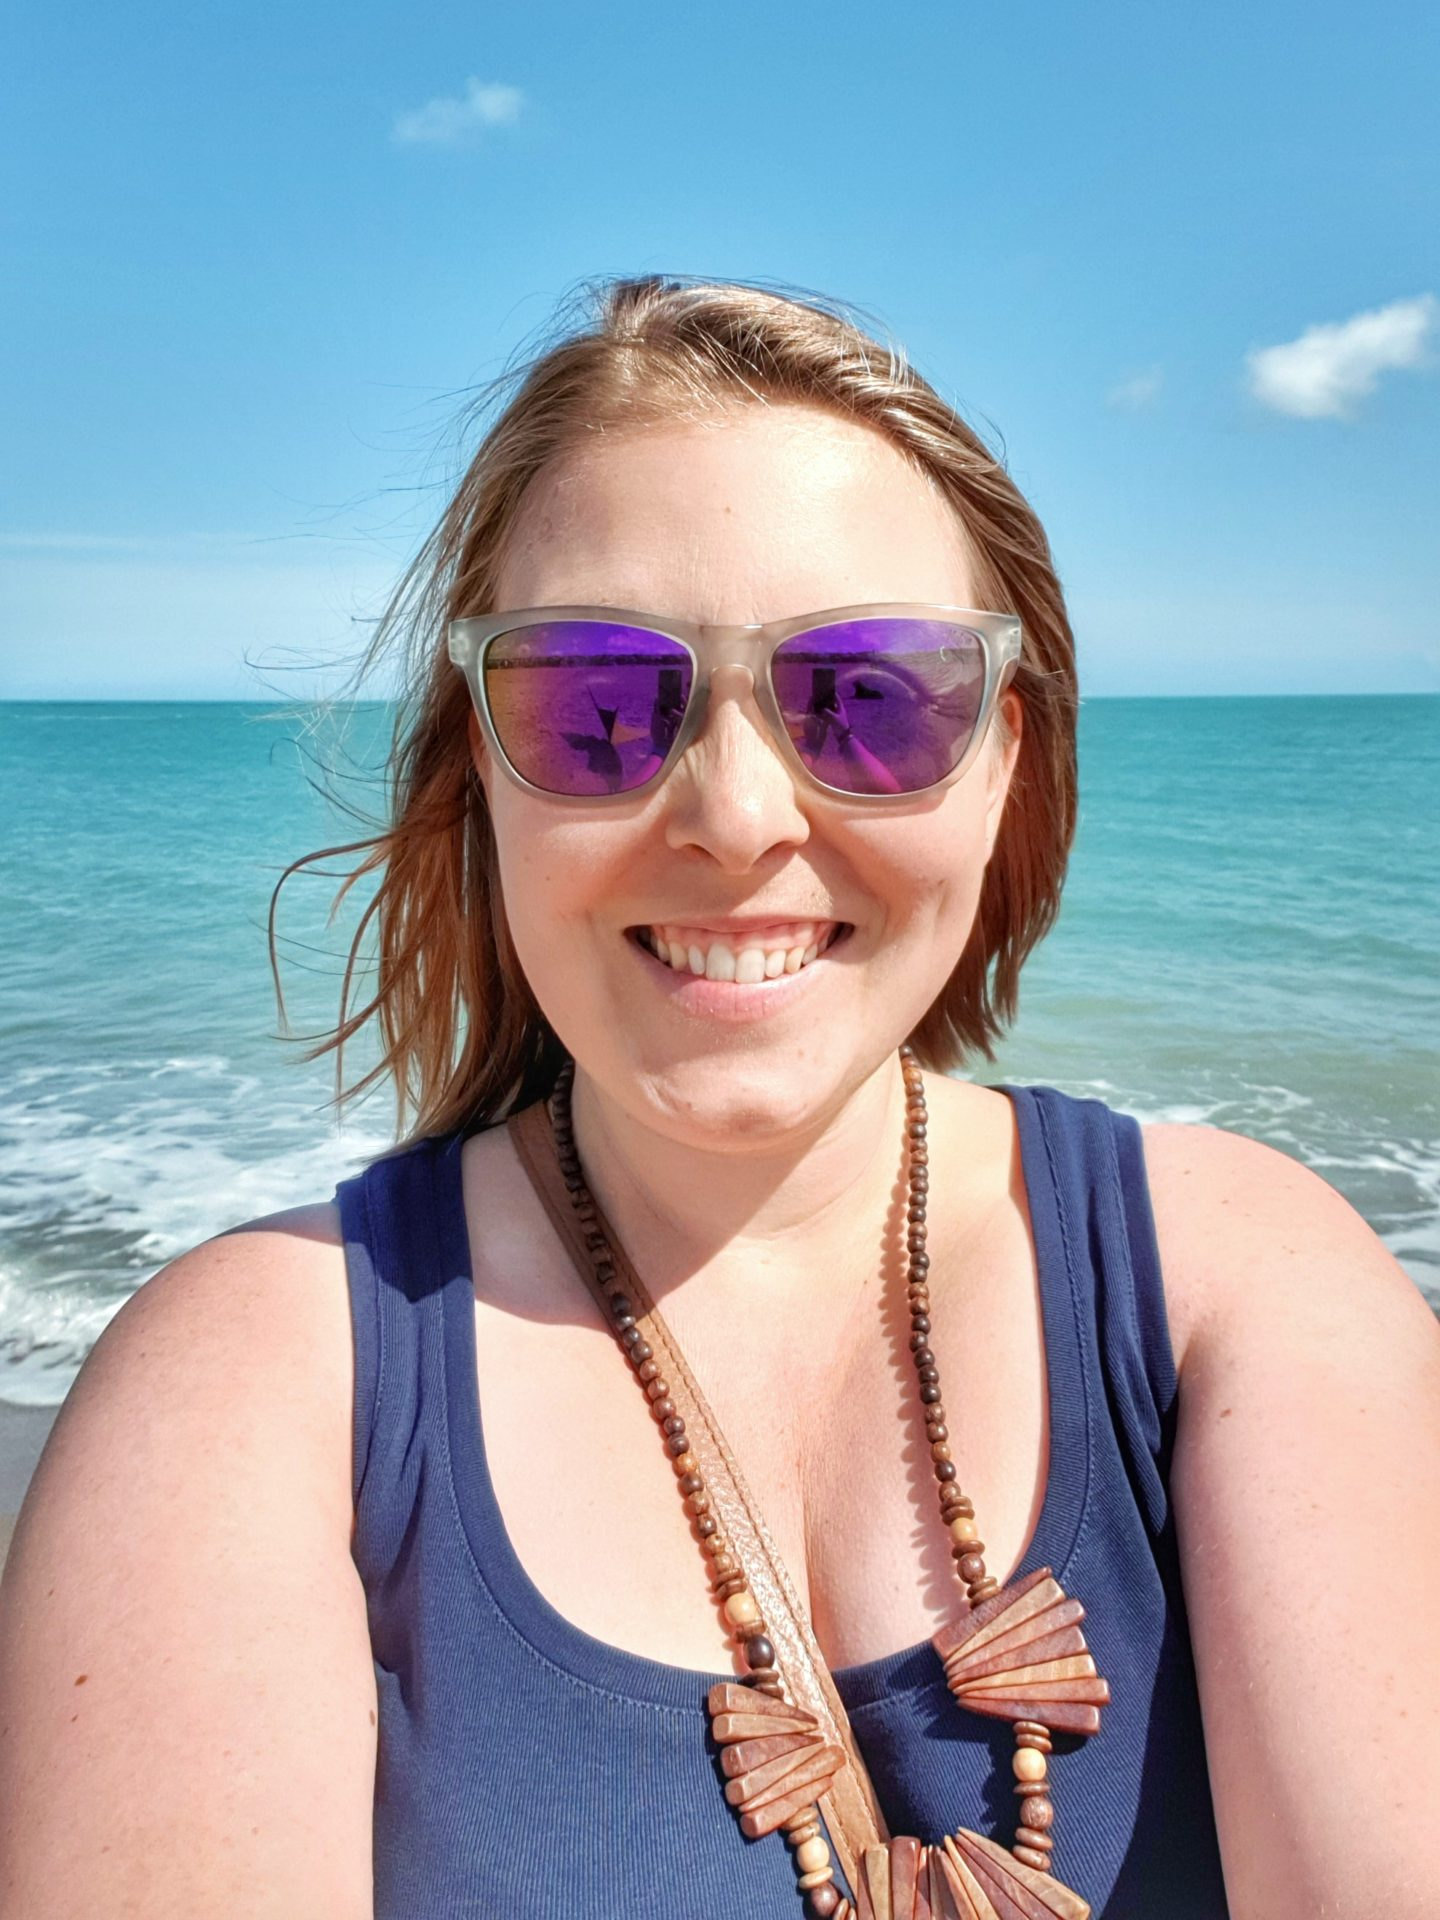 Beki (Miss Wheezy) selfie on the beach in front of the sea